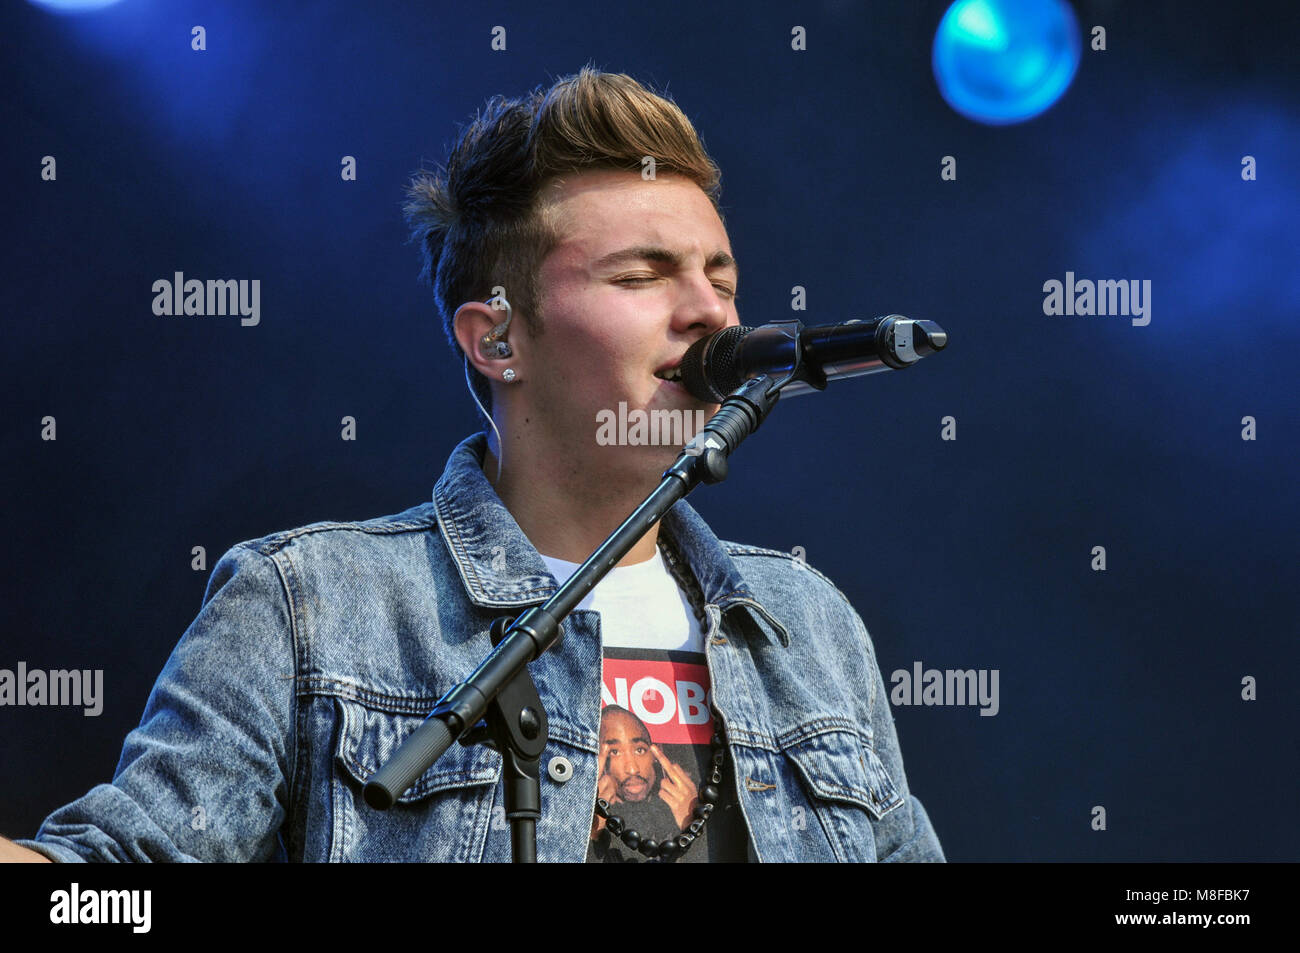 Pop star Olly Marlin perform at a music festival in the summer in the UK - Stock Image